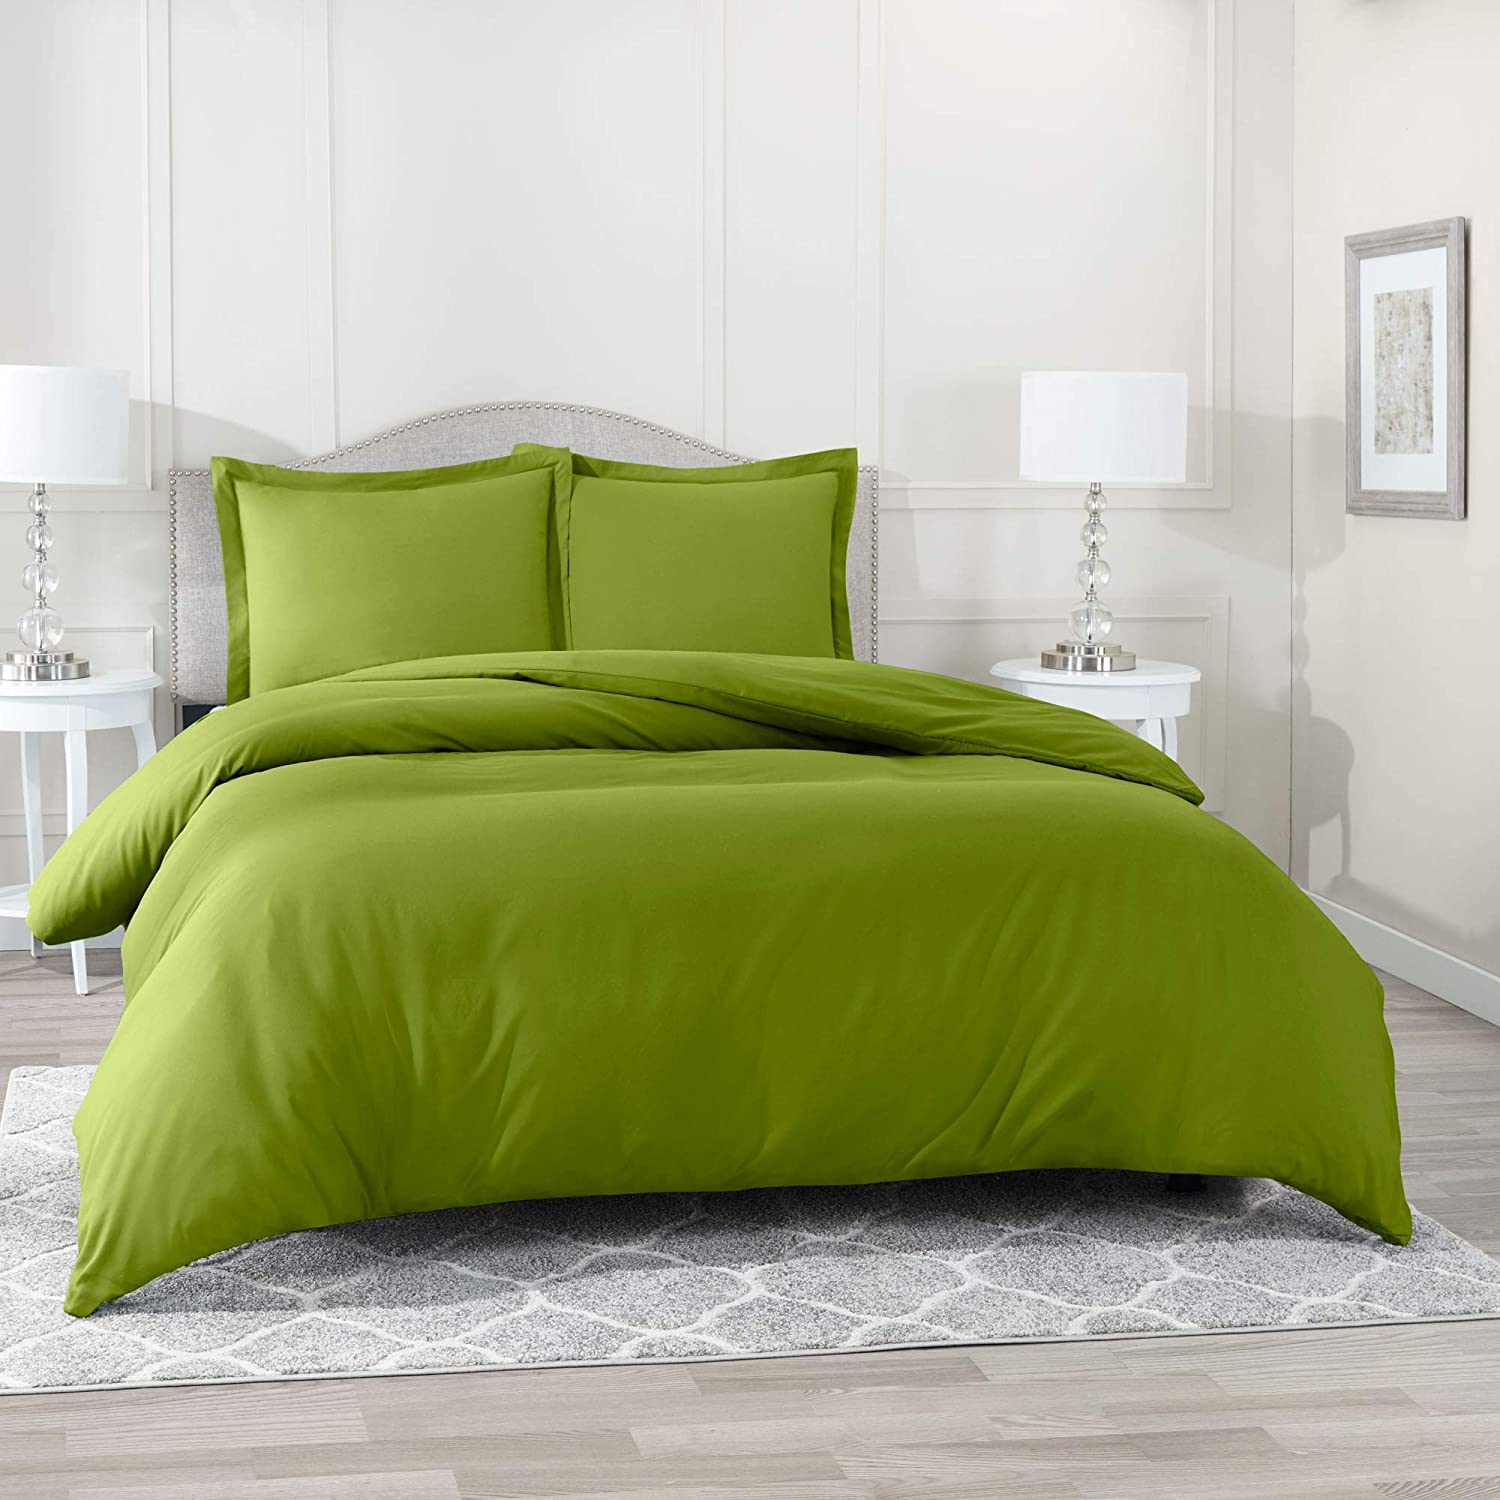 """Nestl Bedding Duvet Cover 2 Piece Set – Ultra Soft Double Brushed Microfiber Hotel Collection – Comforter Cover with Button Closure and 1 Pillow Sham, Calla Green - Twin (Single) 68""""x90"""""""